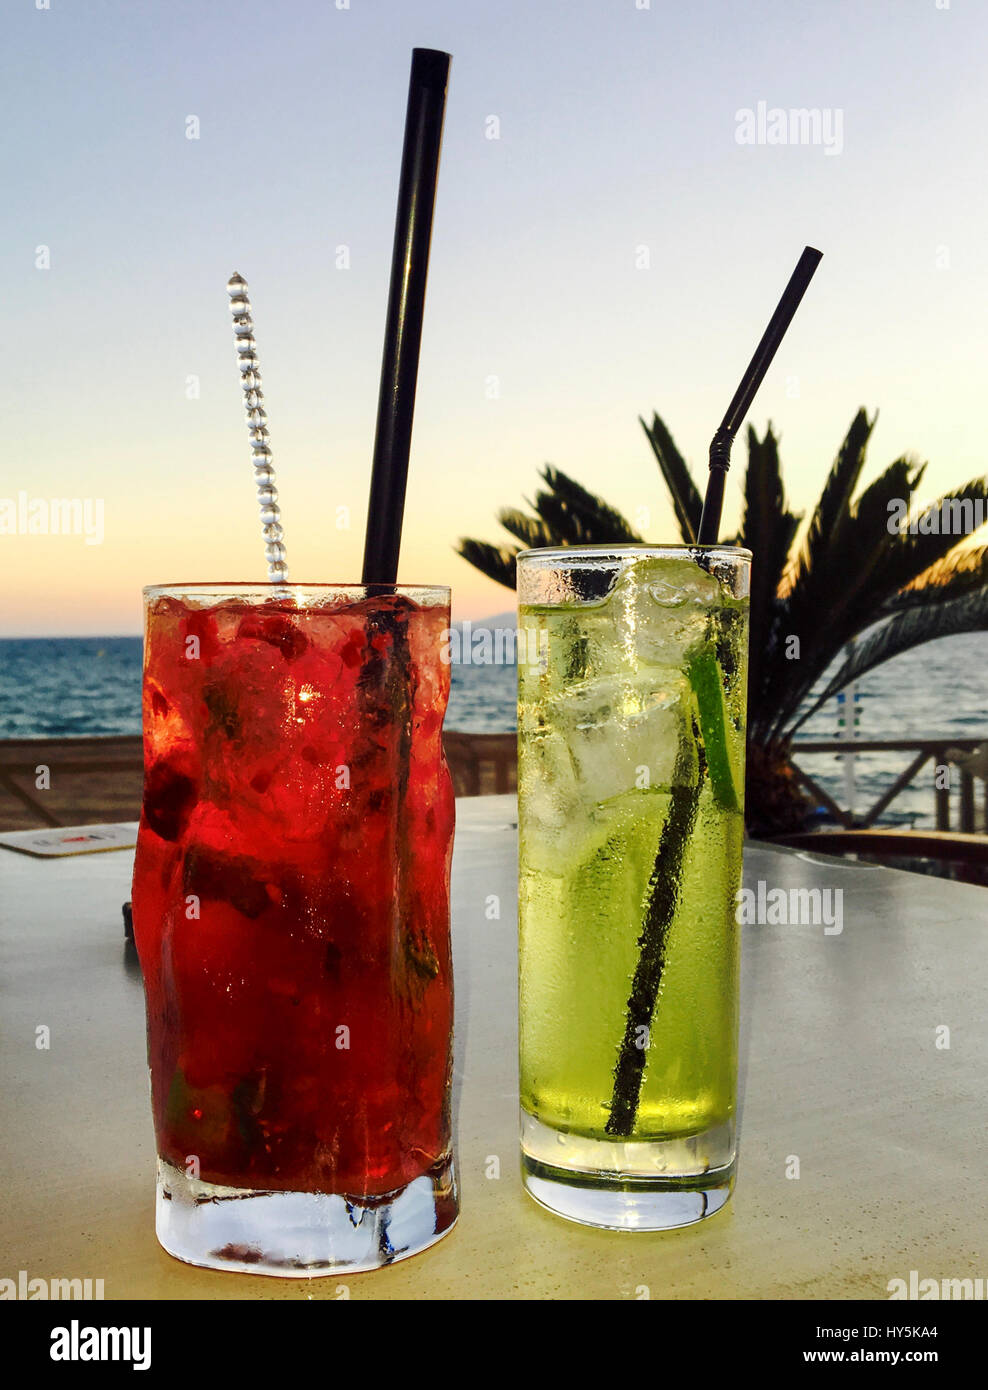 Cocktails on a table in a beach bar - Stock Image